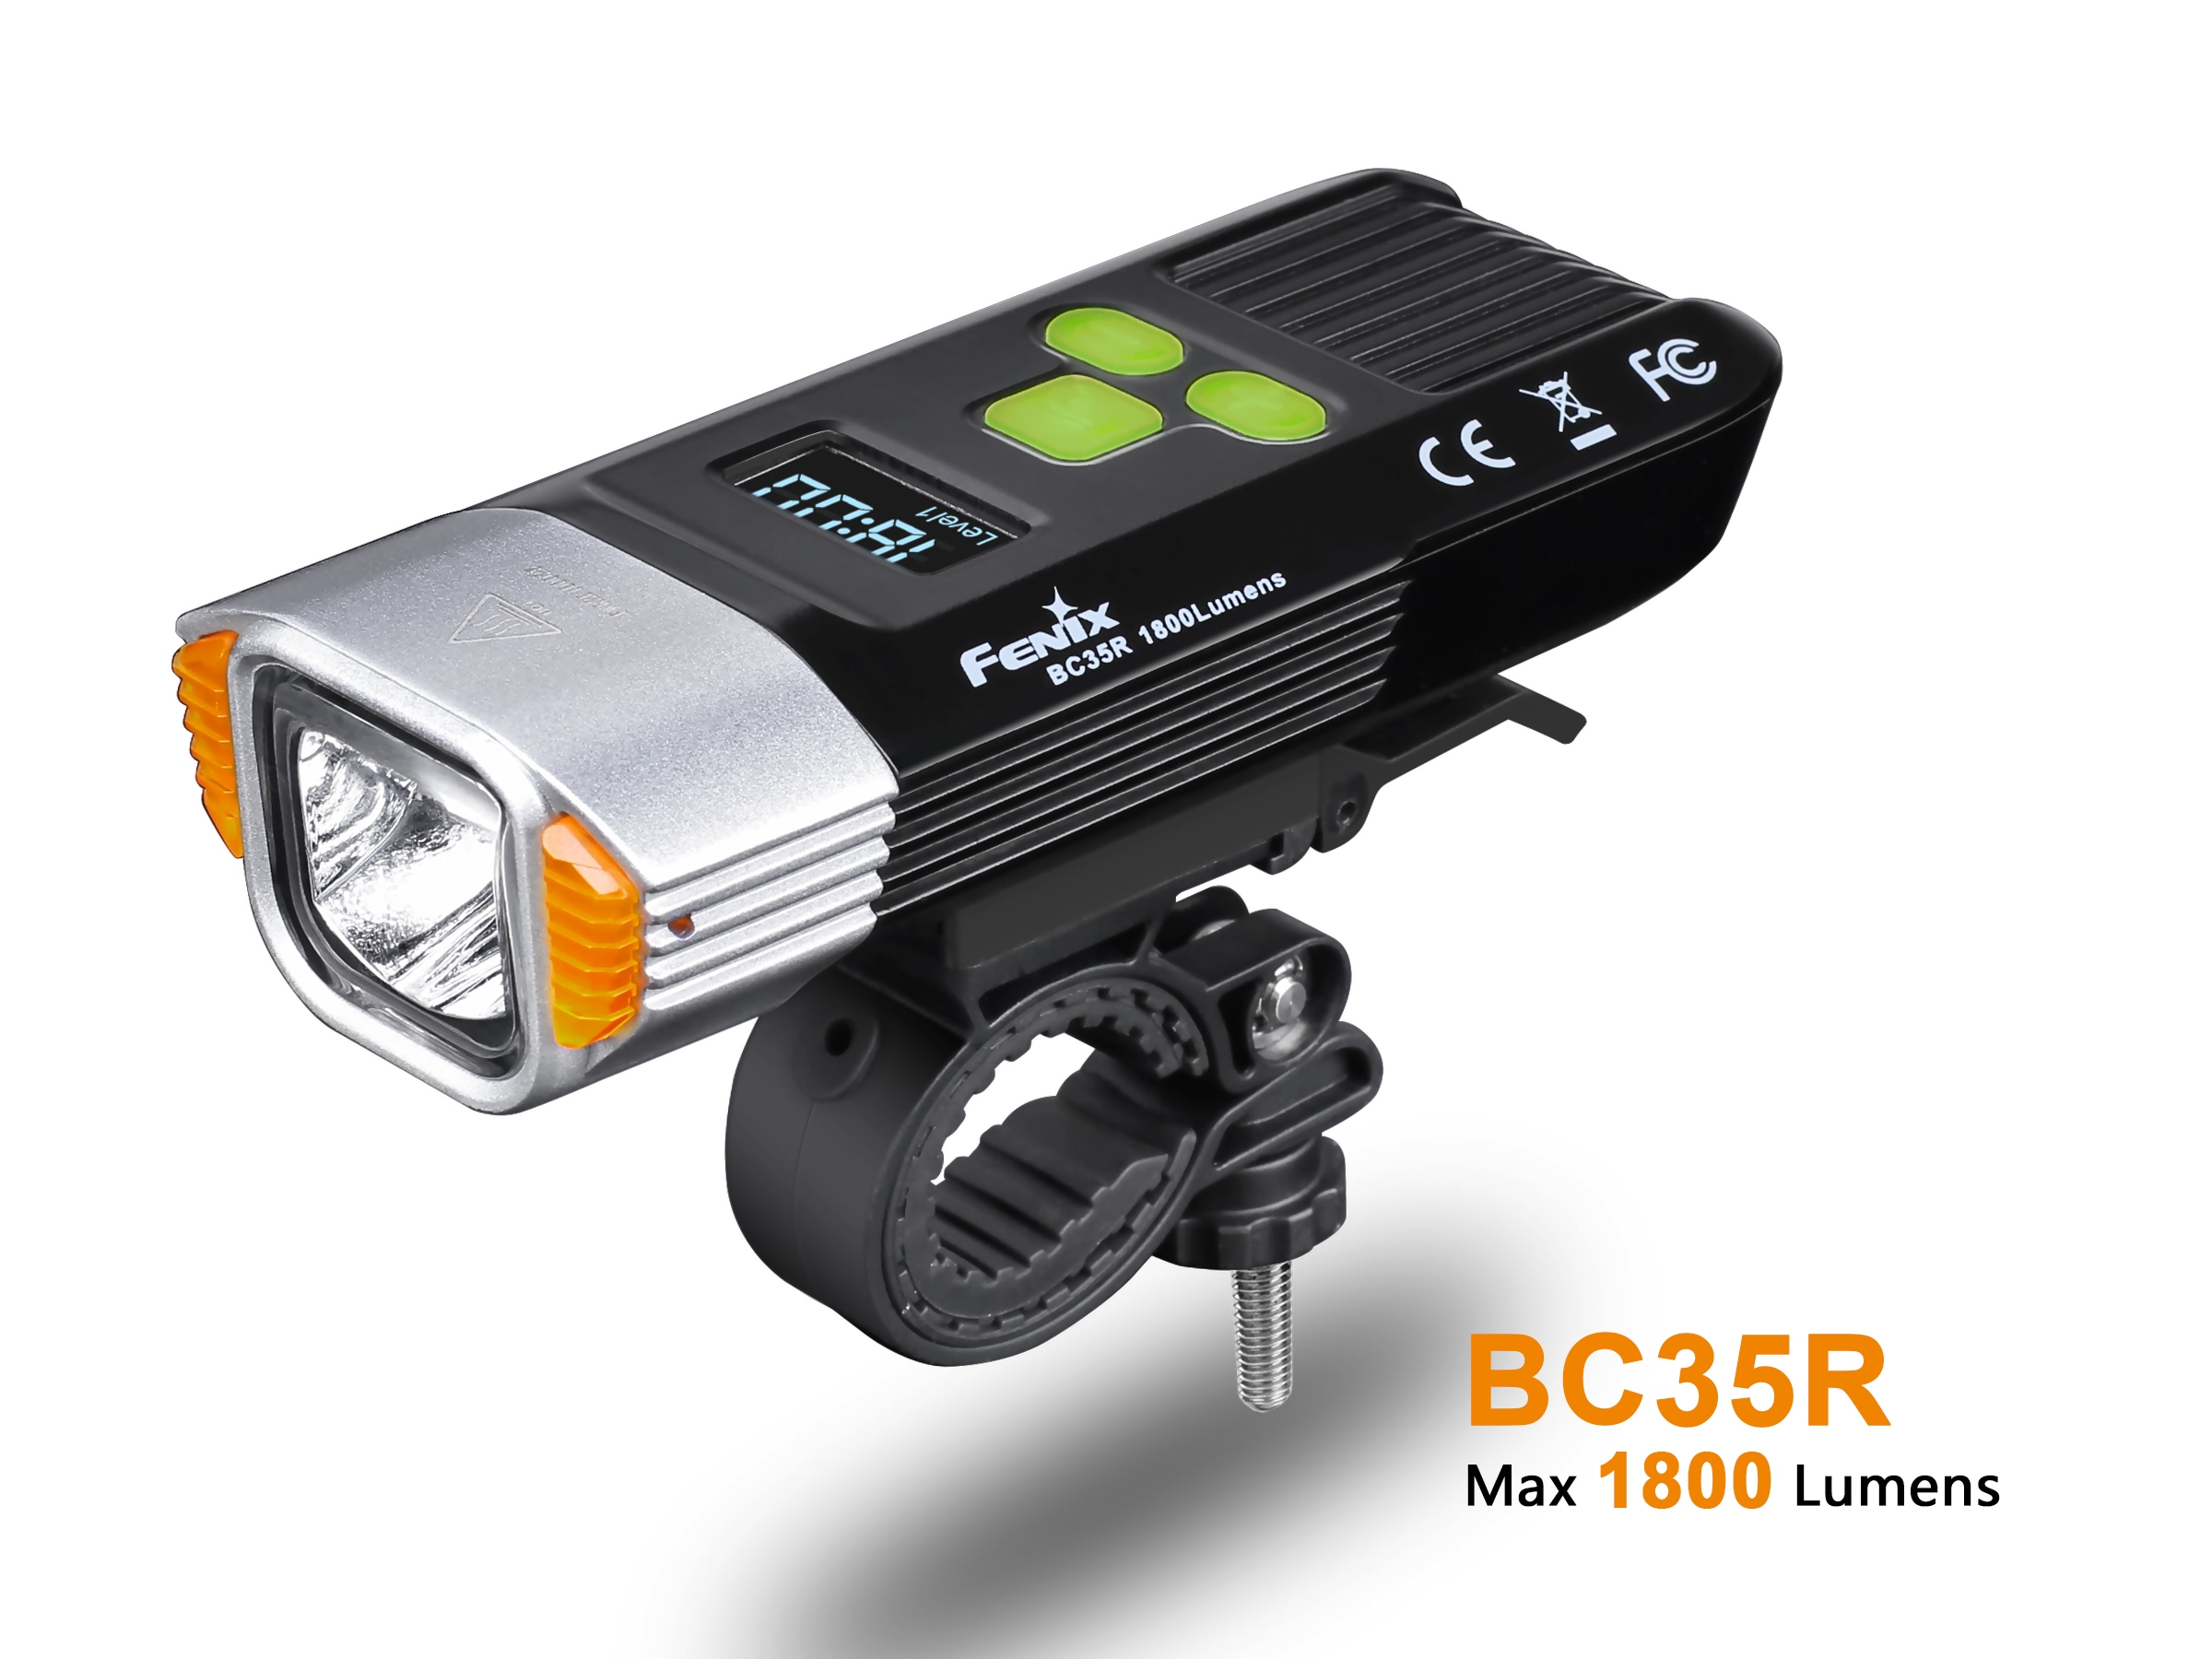 New Arrival Fenix BC35R 2018 High performance Digital OLED Display Micro USB Rechargeable Bicycle Front Light